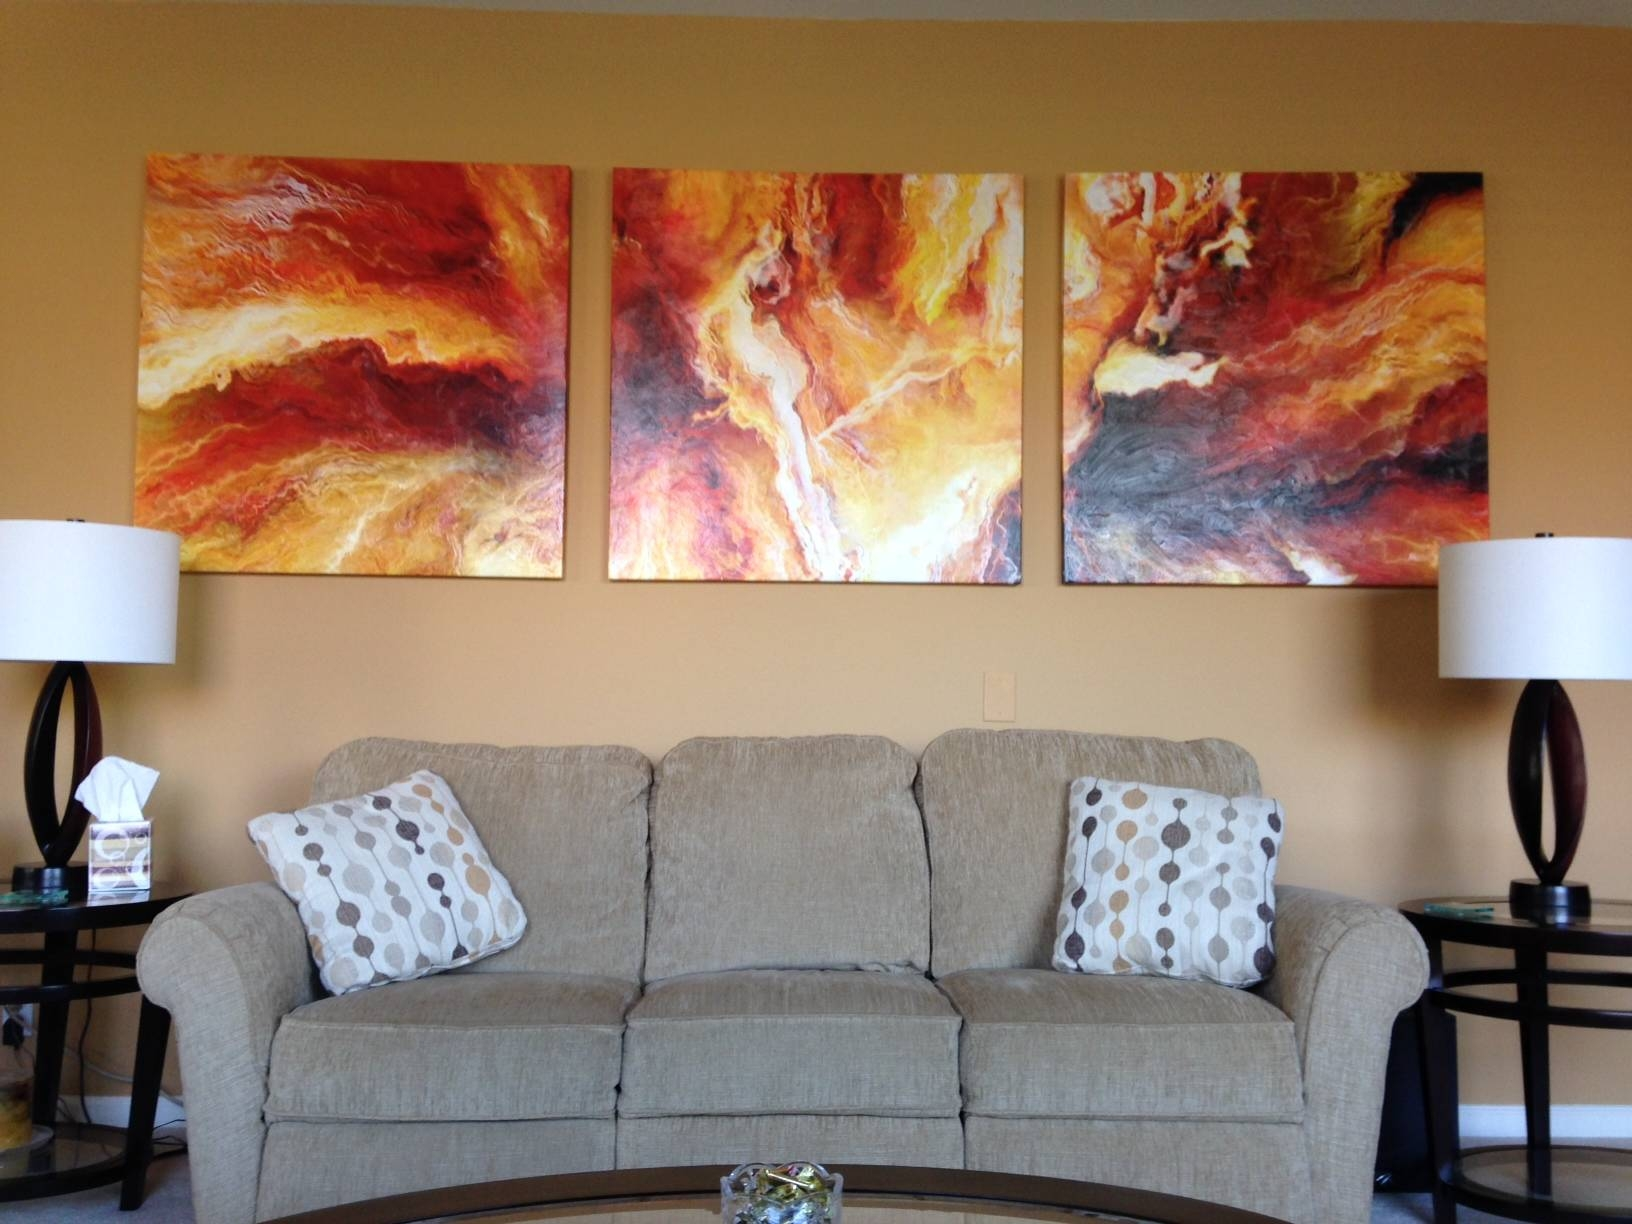 Large Abstract Art Archives – Cianelli Studios Art Blog Throughout Most Recent Large Triptych Wall Art (View 10 of 20)